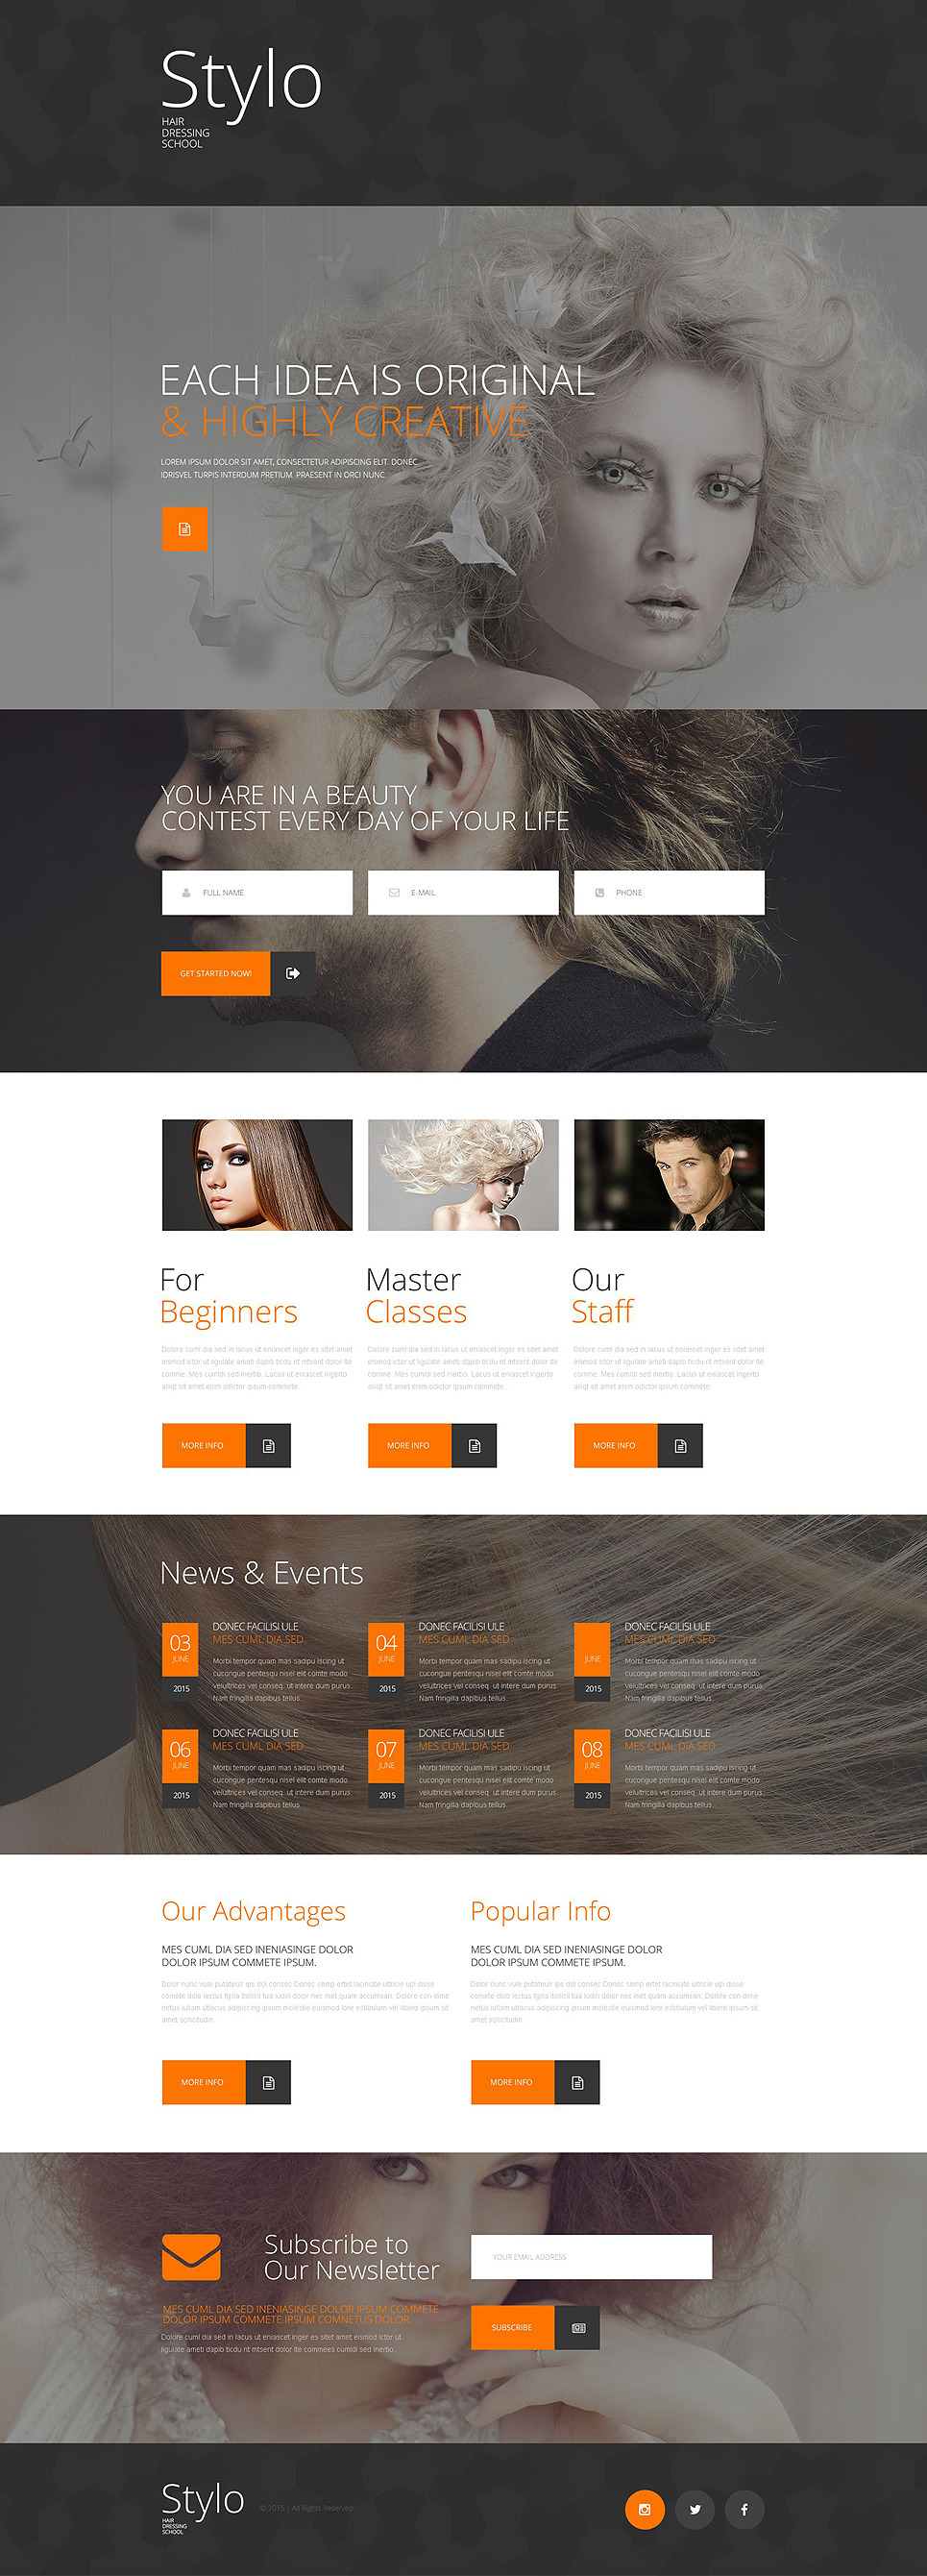 Beauty School Responsive Landing Page Template New Screenshots BIG